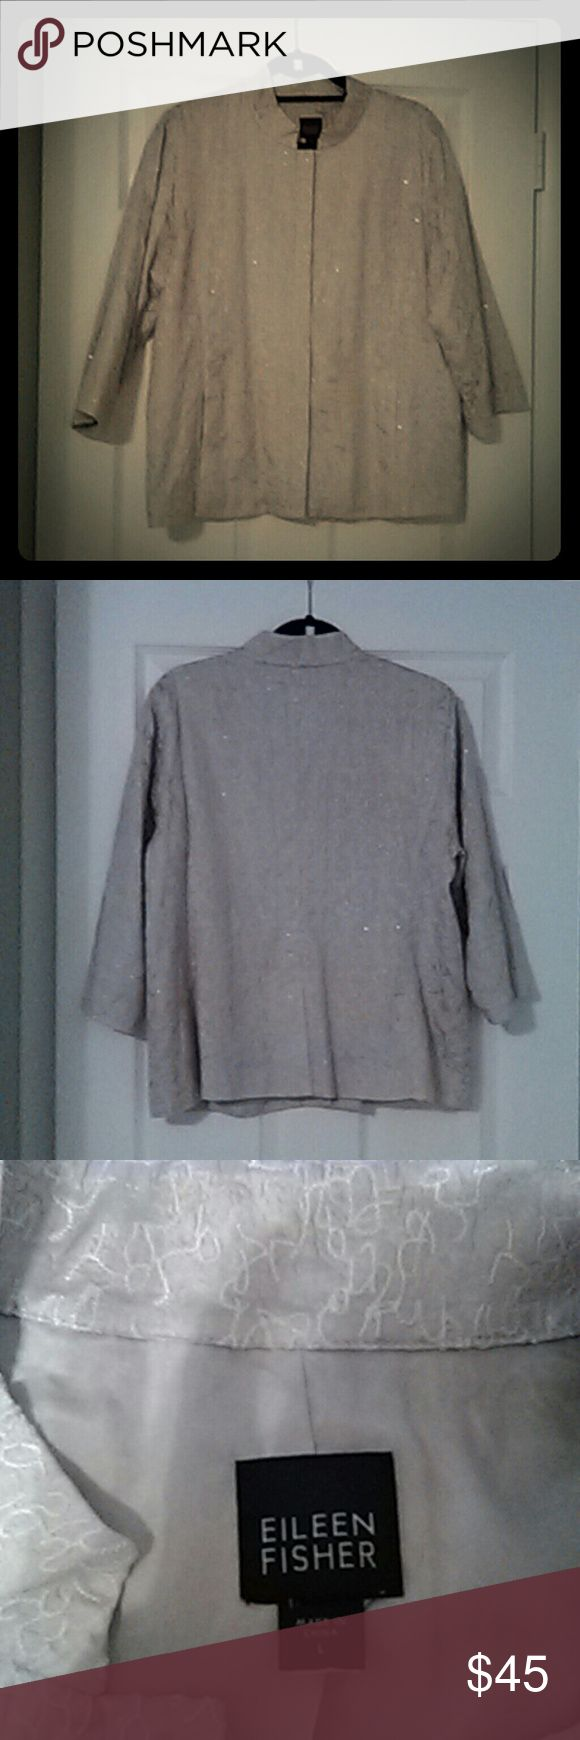 Eileen Fisher 100% Silk Embroidered Jacket Dazzling Jacket Embroidered Throughout. Hidden Front Buttons. Delicate Sparkly Sequins Are Woven Into Embroidery. Spectacular Jacket. Fully Lined. Eileen Fisher Jackets & Coats